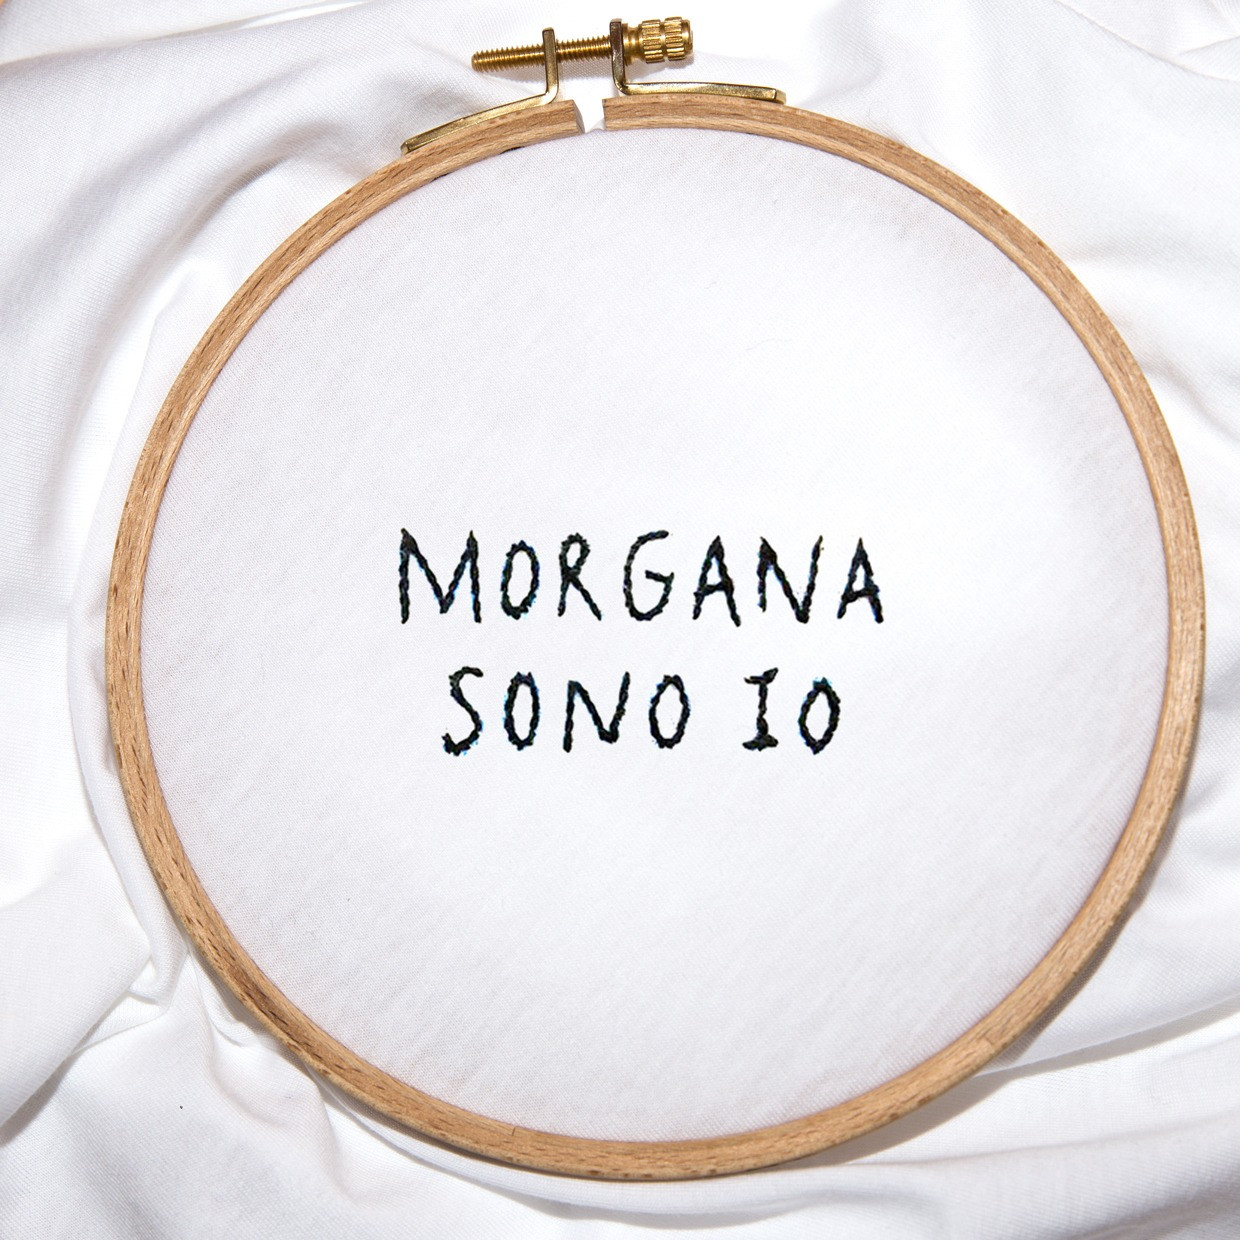 Morgana sono io - kit slim fit